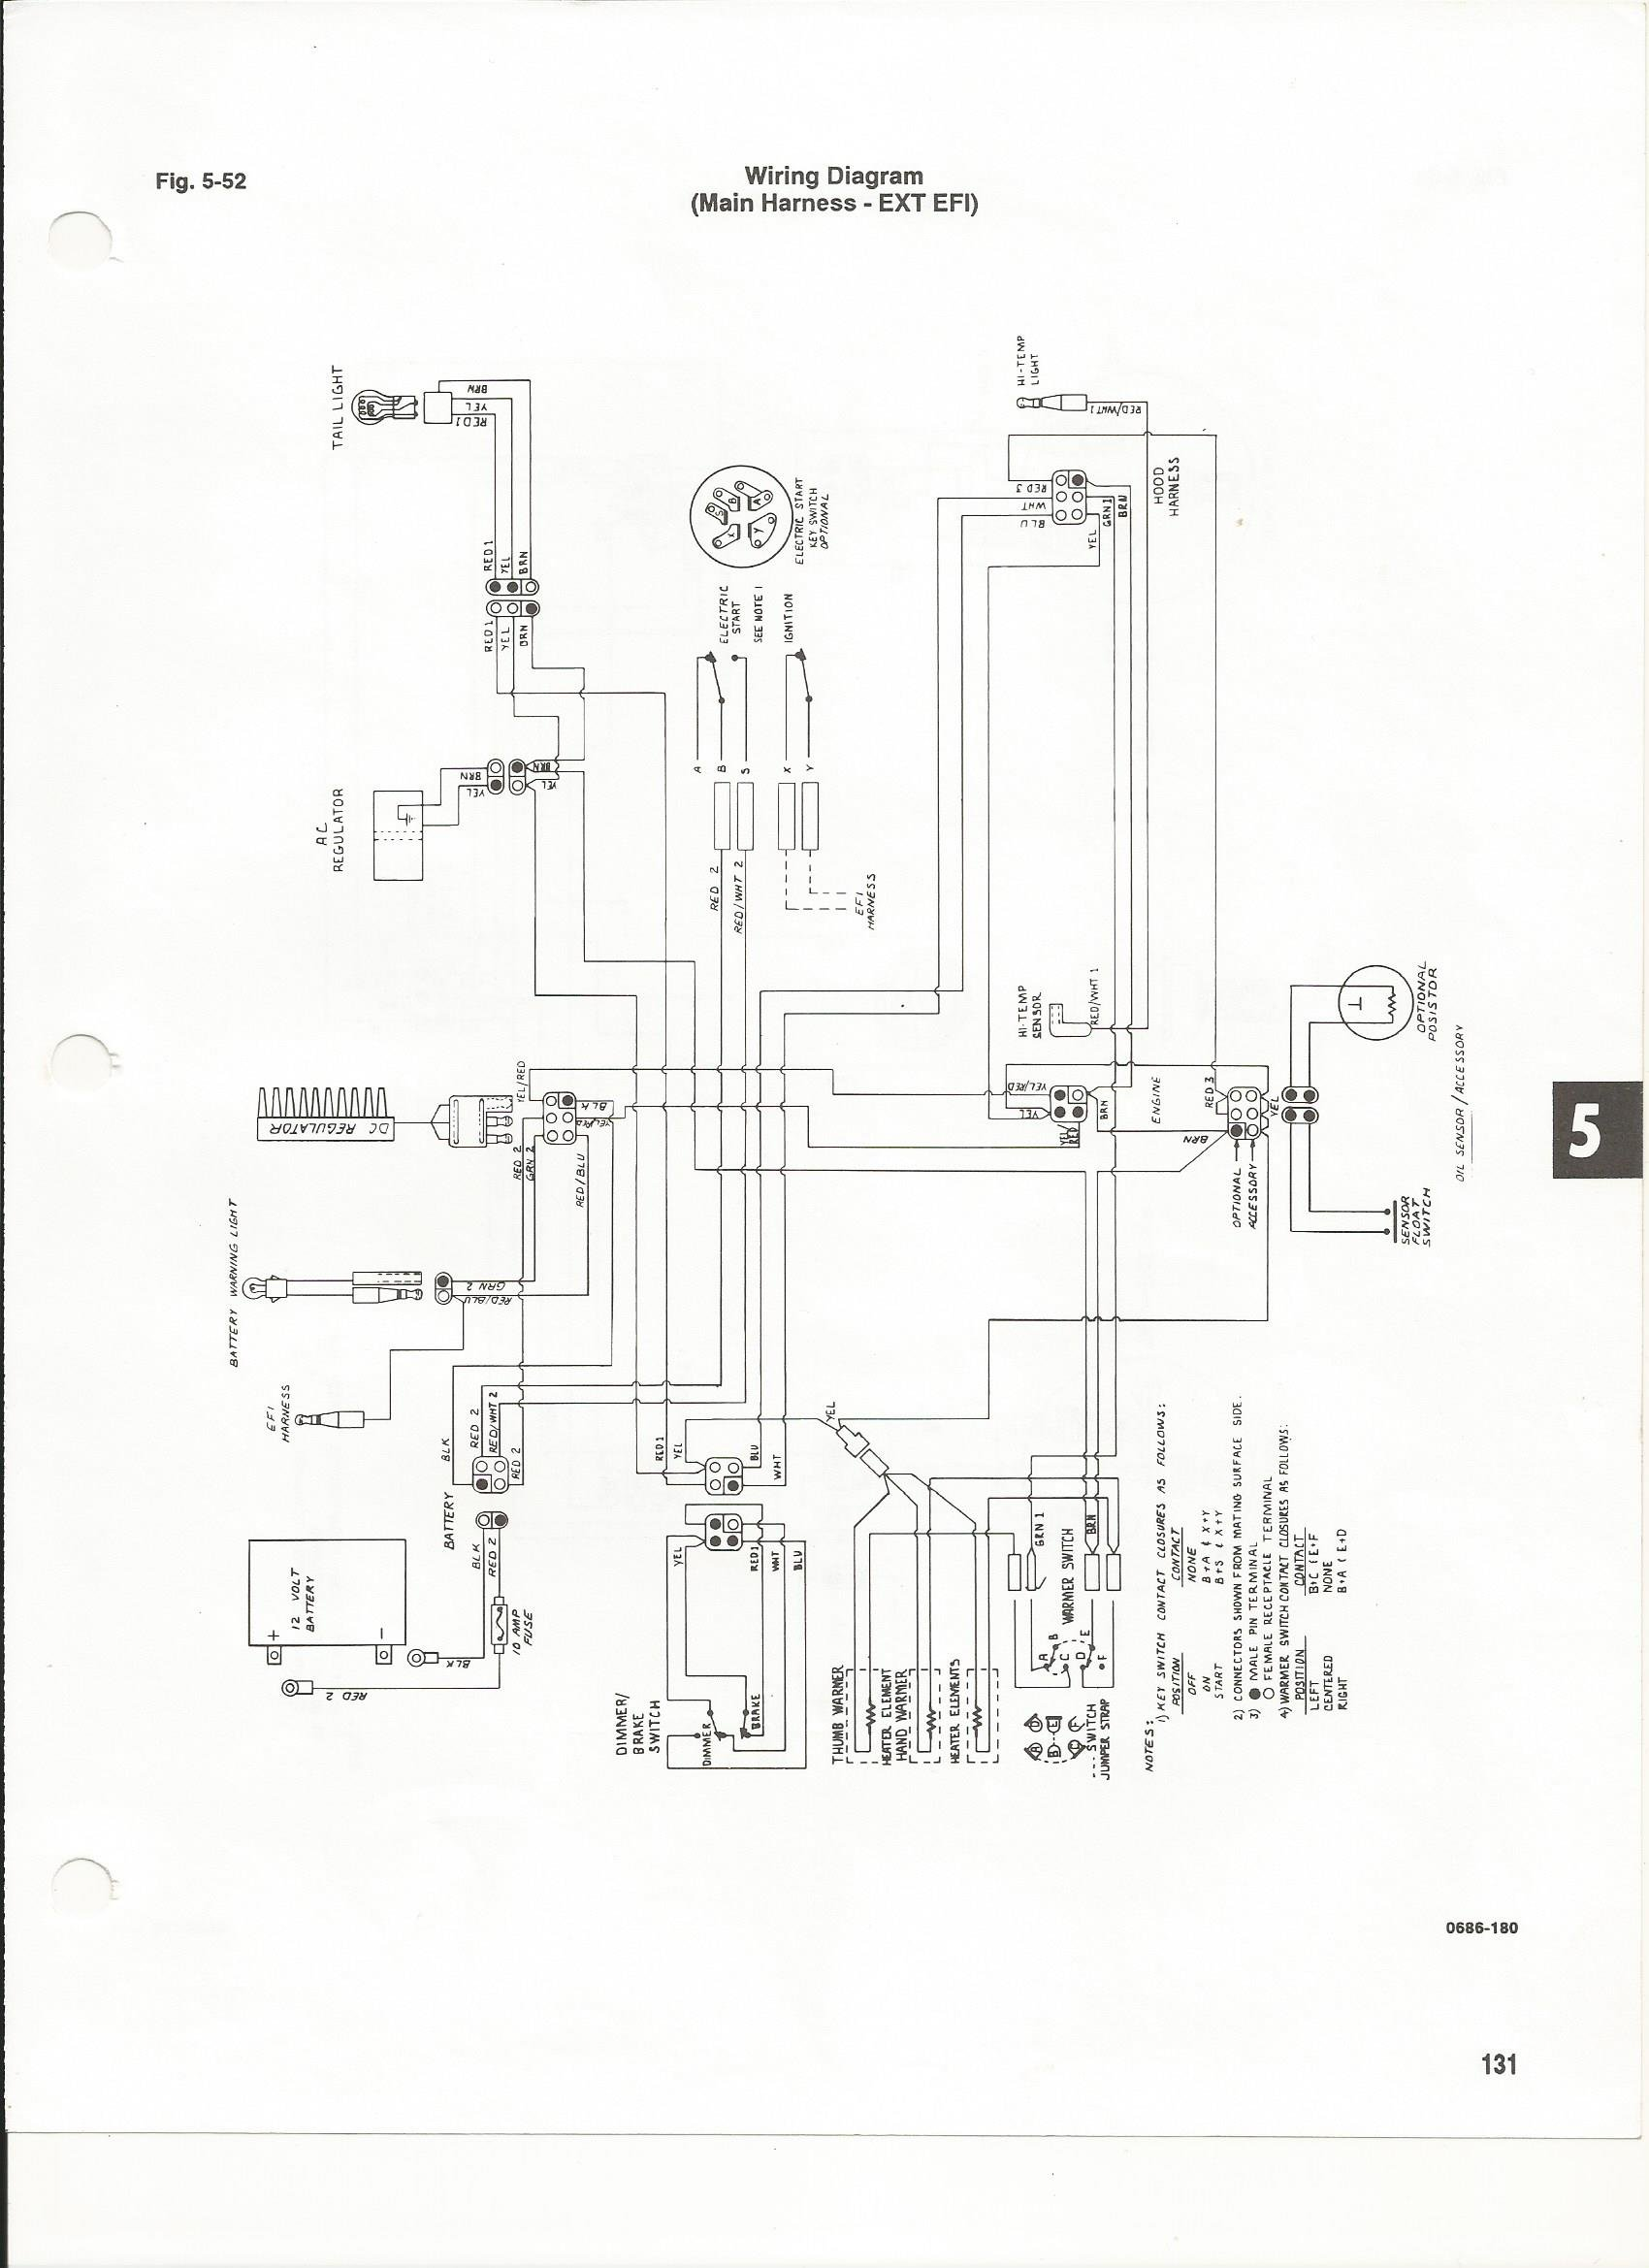 1993 ford f150 xl radio wiring diagram john deere arctic wildcat library